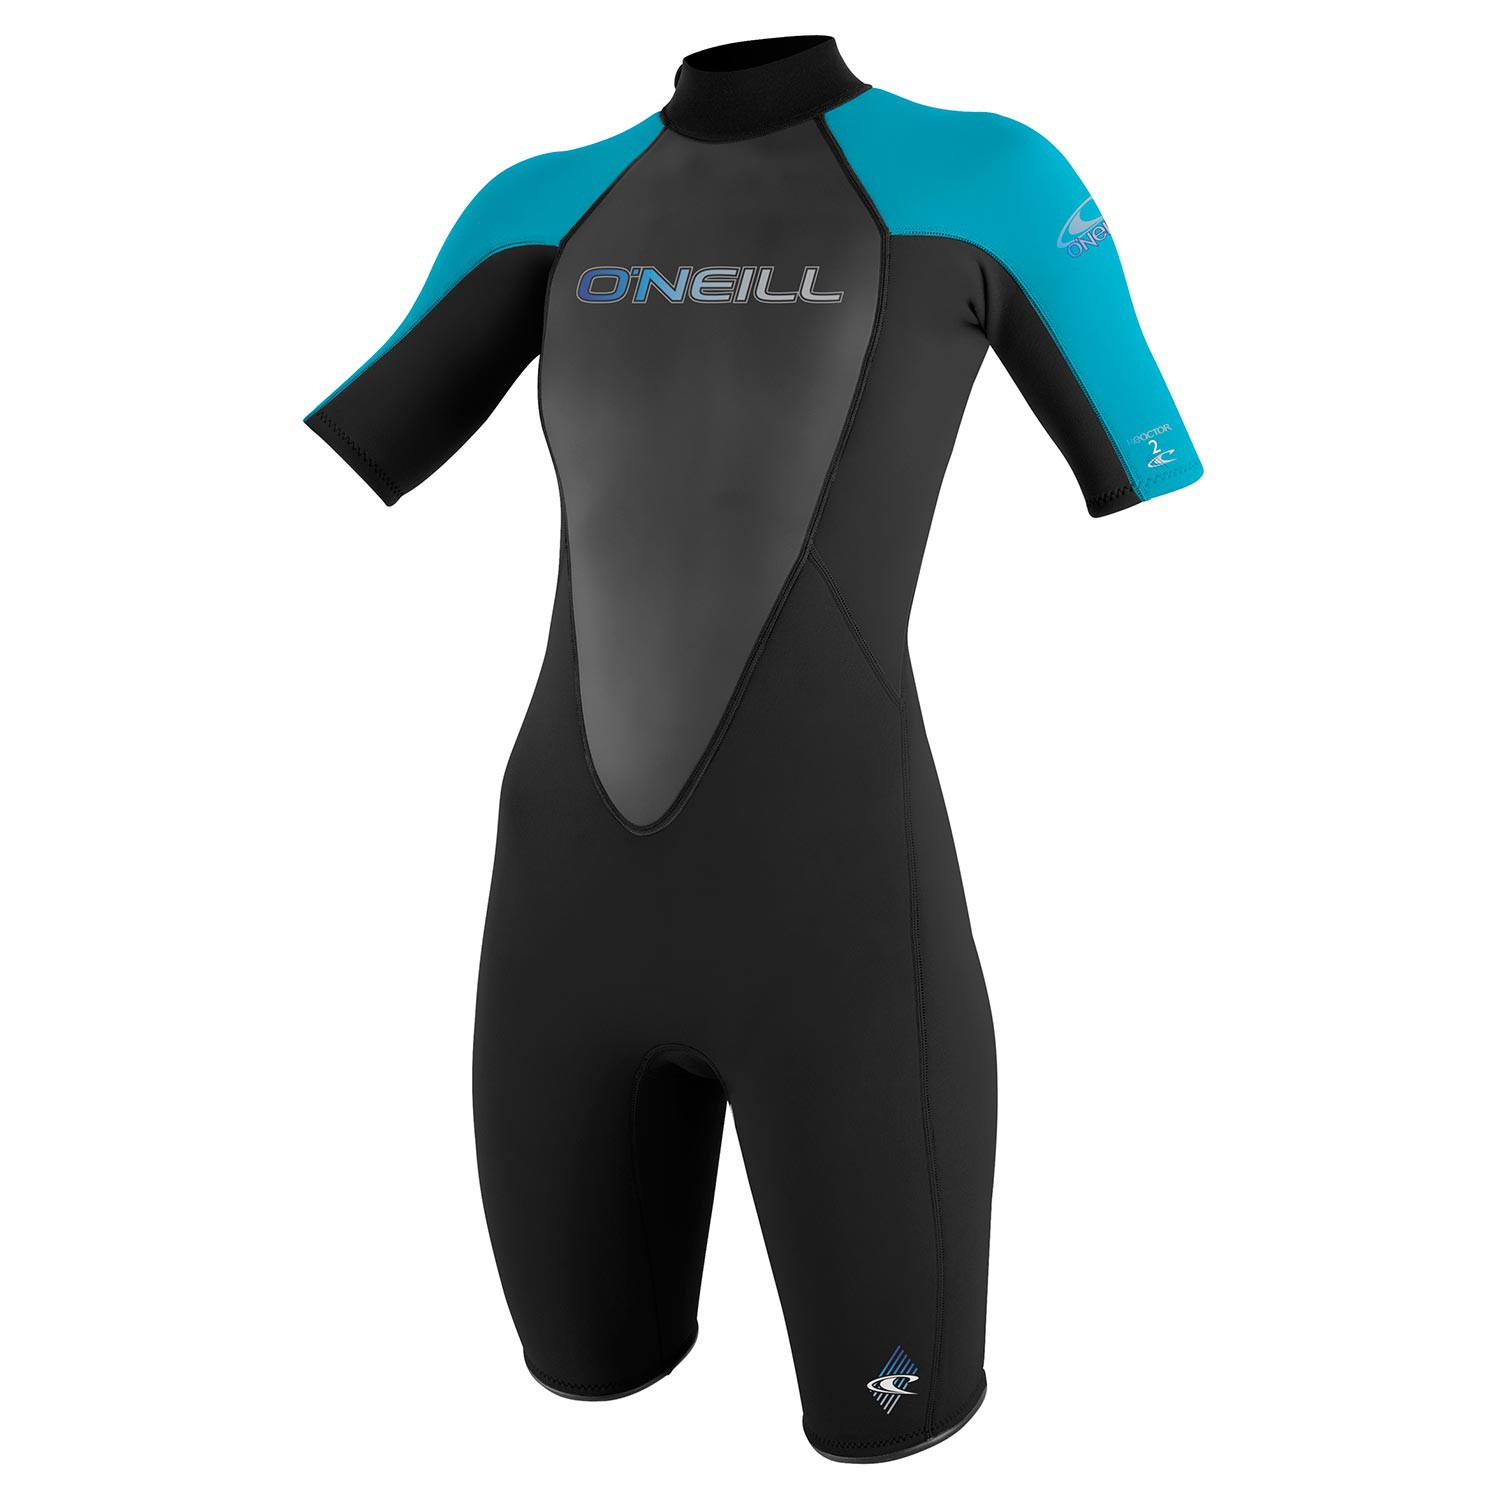 Neoprén O'Neill Wms Reactor 2mm S/S Spring black/turquoise/black